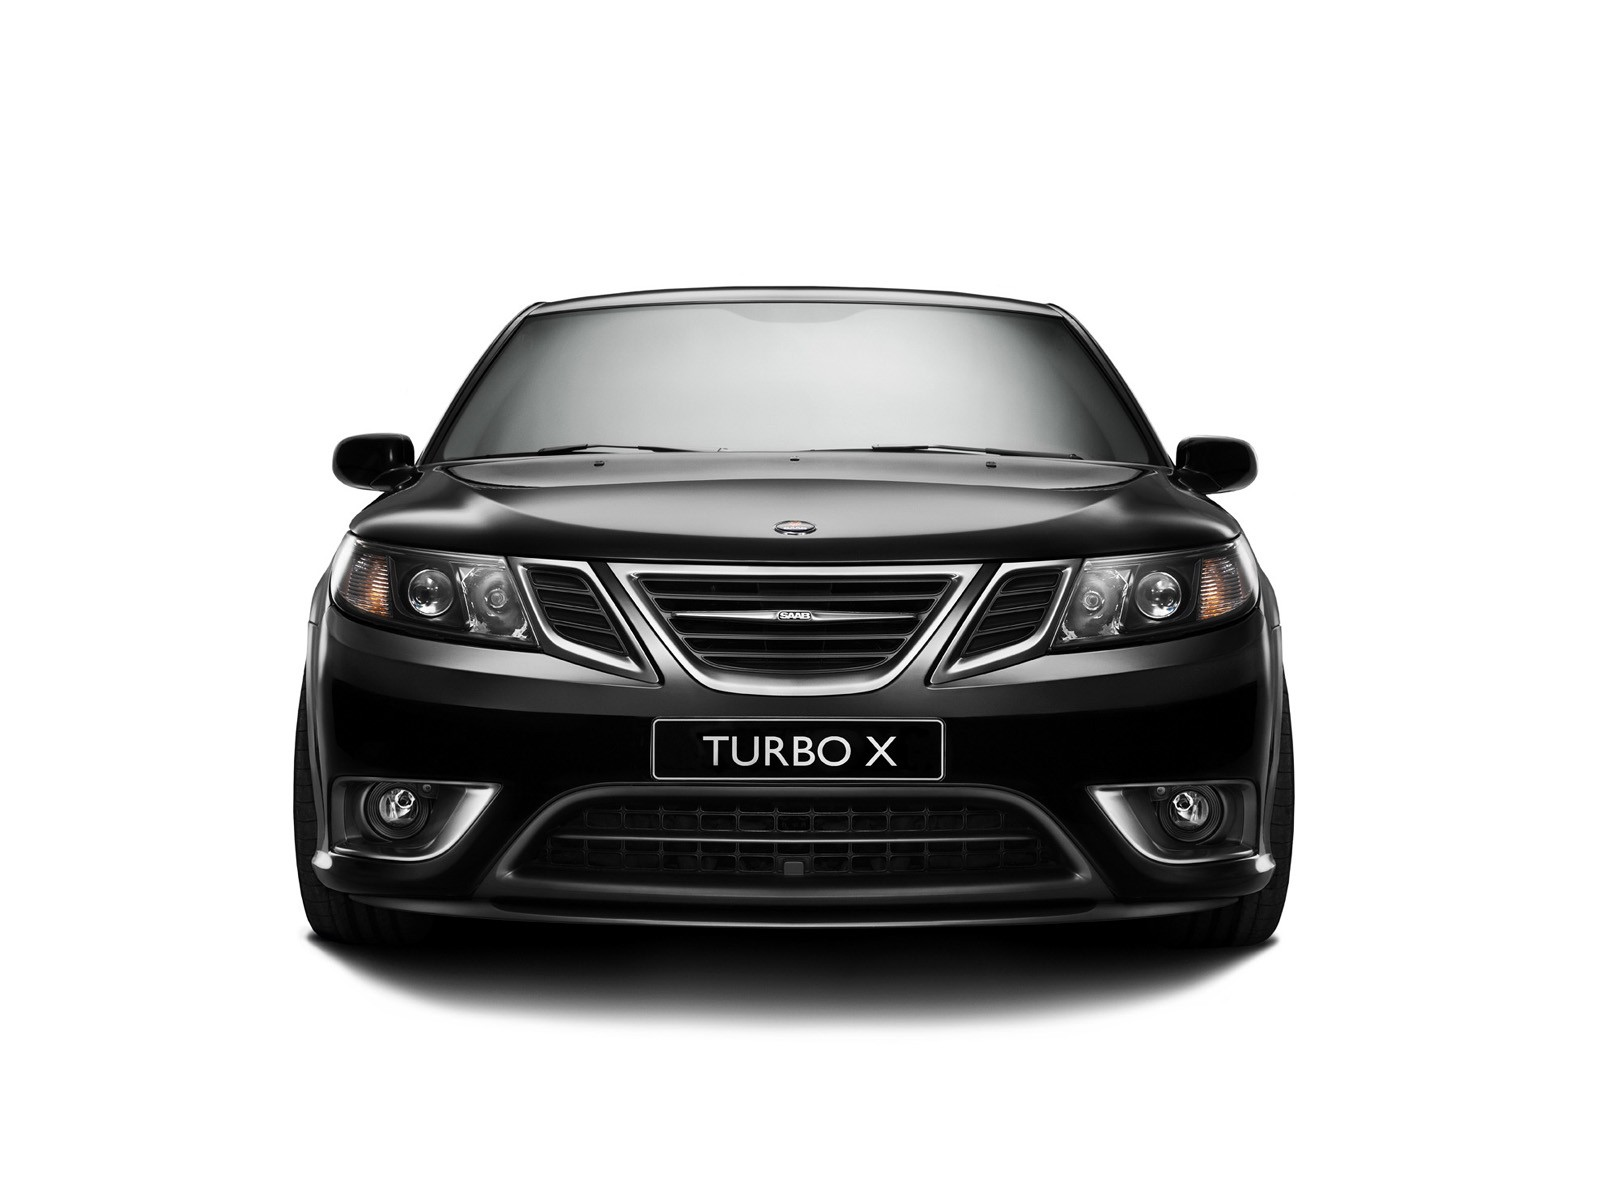 Saab Turbo X 2008 2009 2010 2011 2012 Autoevolution